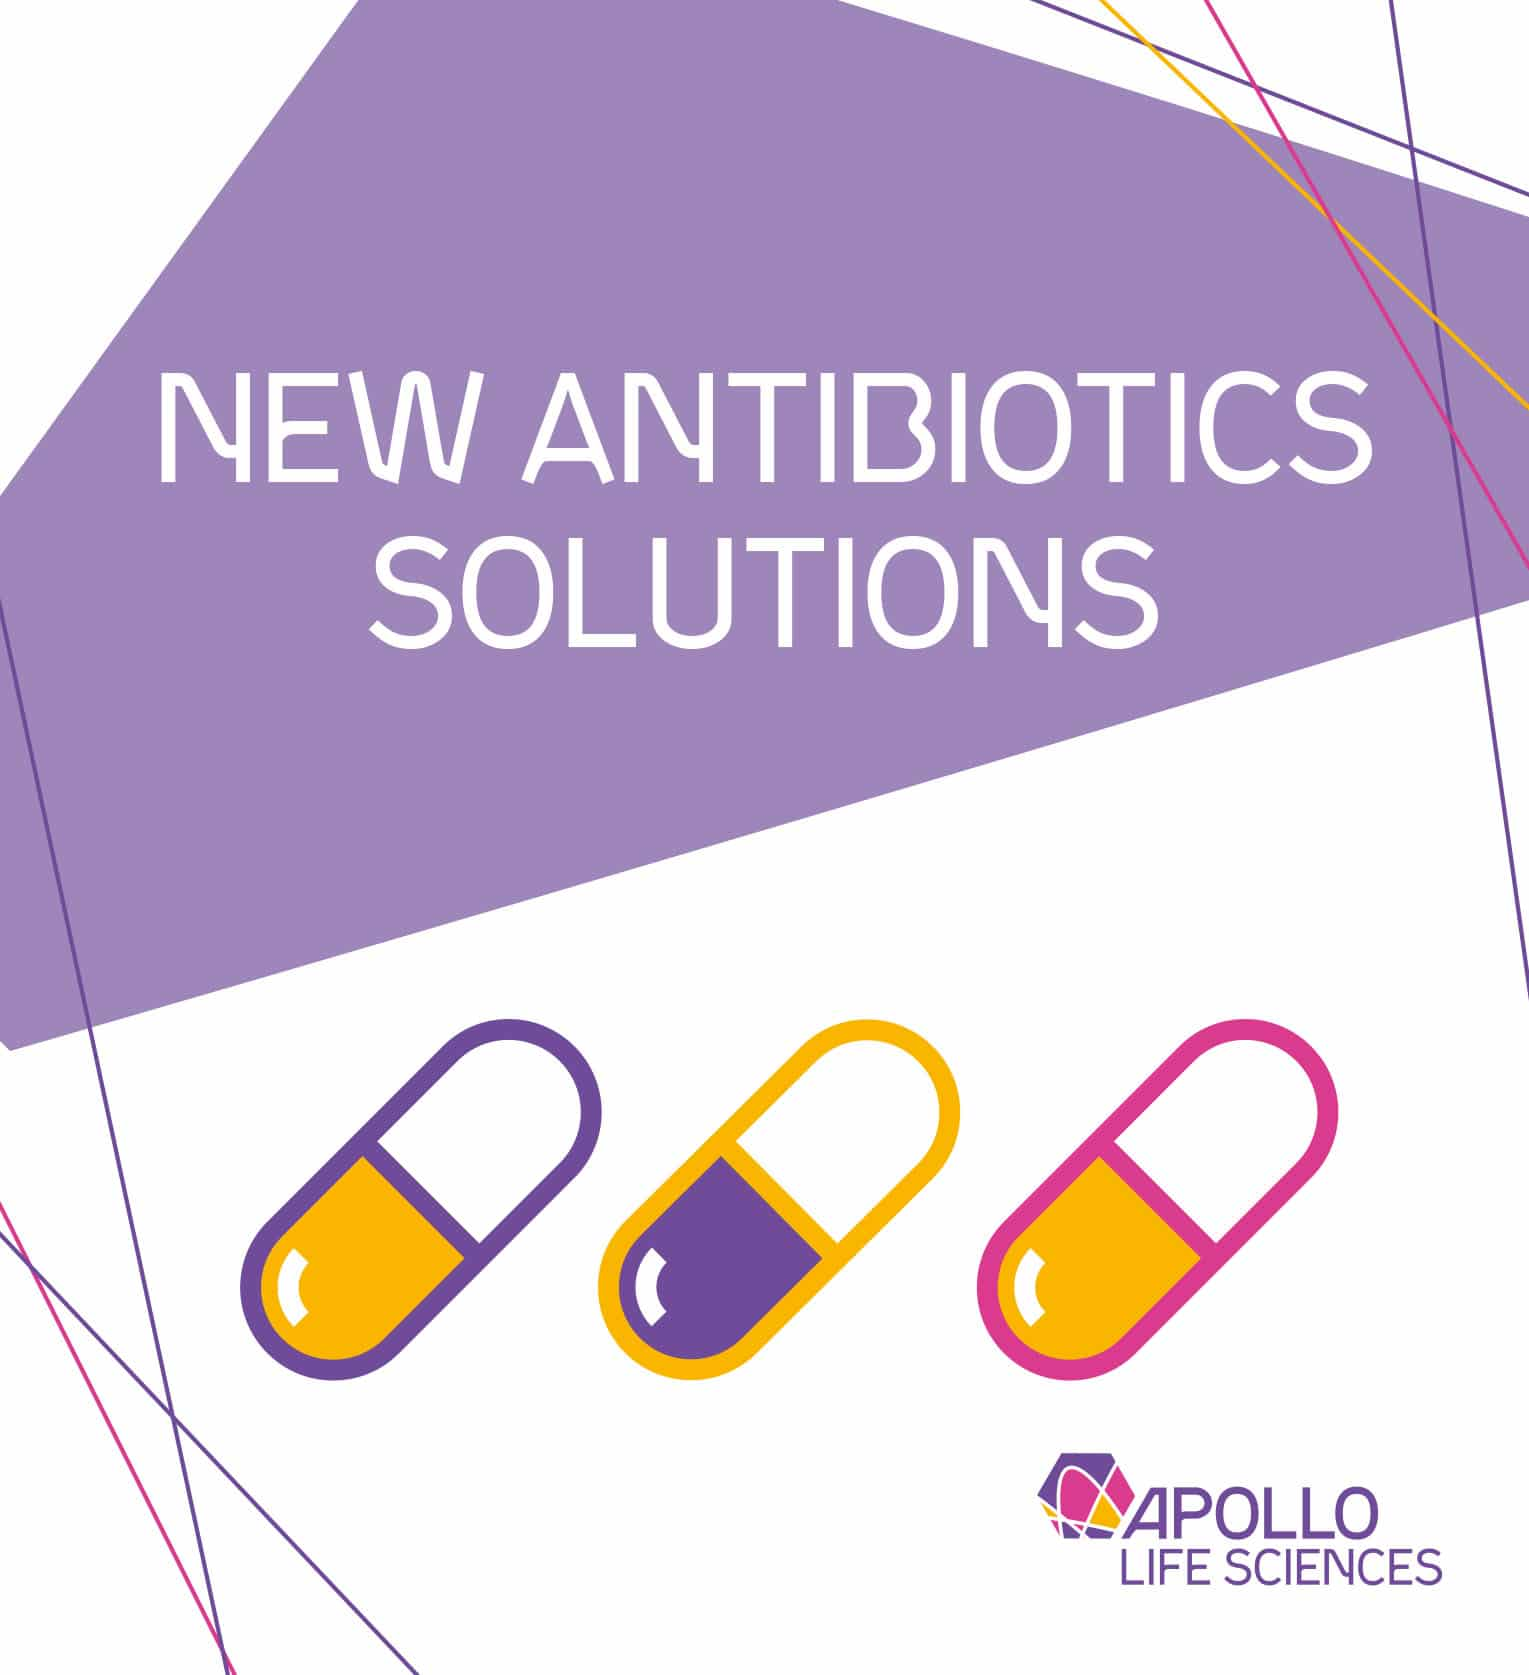 New Antibiotics Solutions thumbnail image